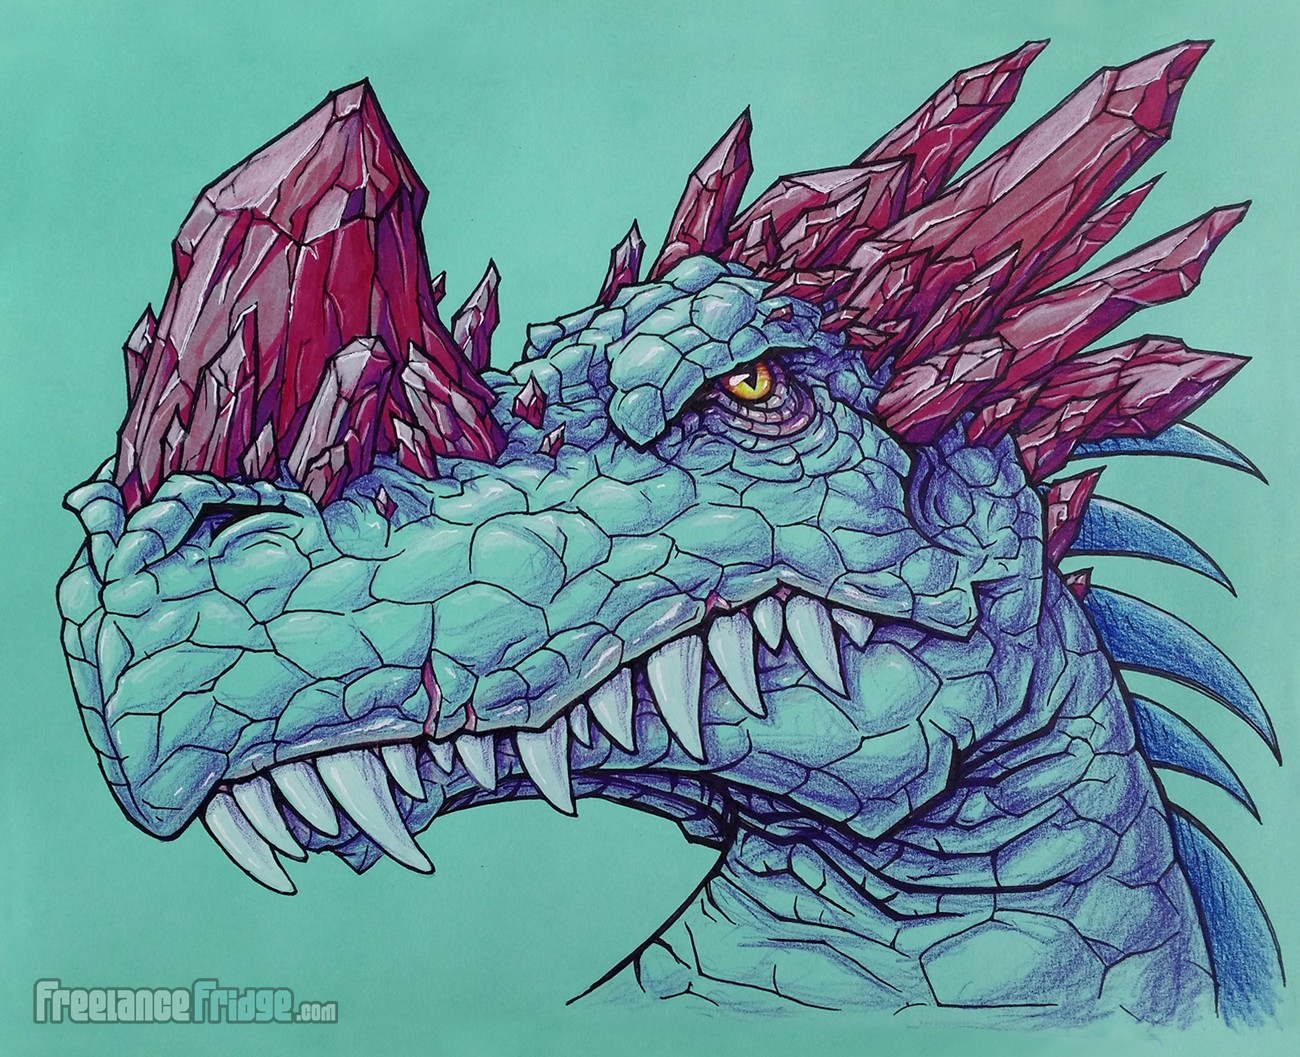 Crystal Horned Dragon Head Sketch Pencil Inked & Colored Drawing Concept Art